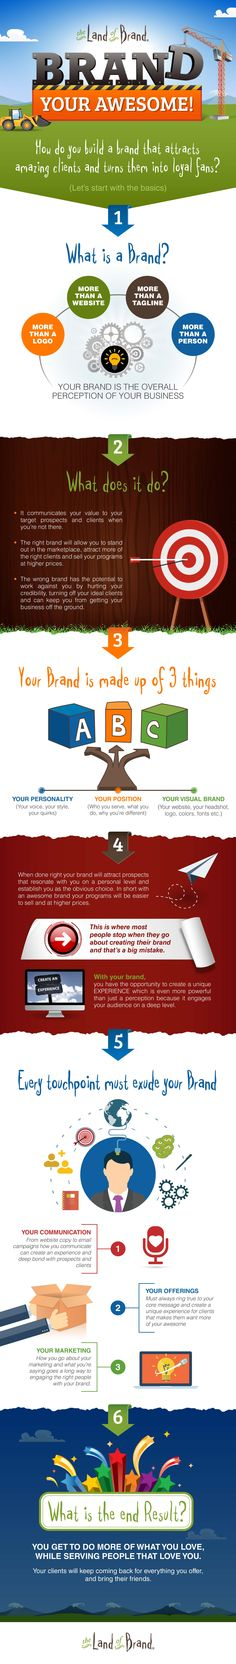 This infographic educates you how you can create a brand that attracts a huge number of customers and earns their loyalty in a short span of time. It starts with basics such as what is a brand, what it does, what it is made up of and how it can be made awesome. It also discusses how your communication, offerings, and marketing make a difference and what the result would be. #Brand #Infobrandz